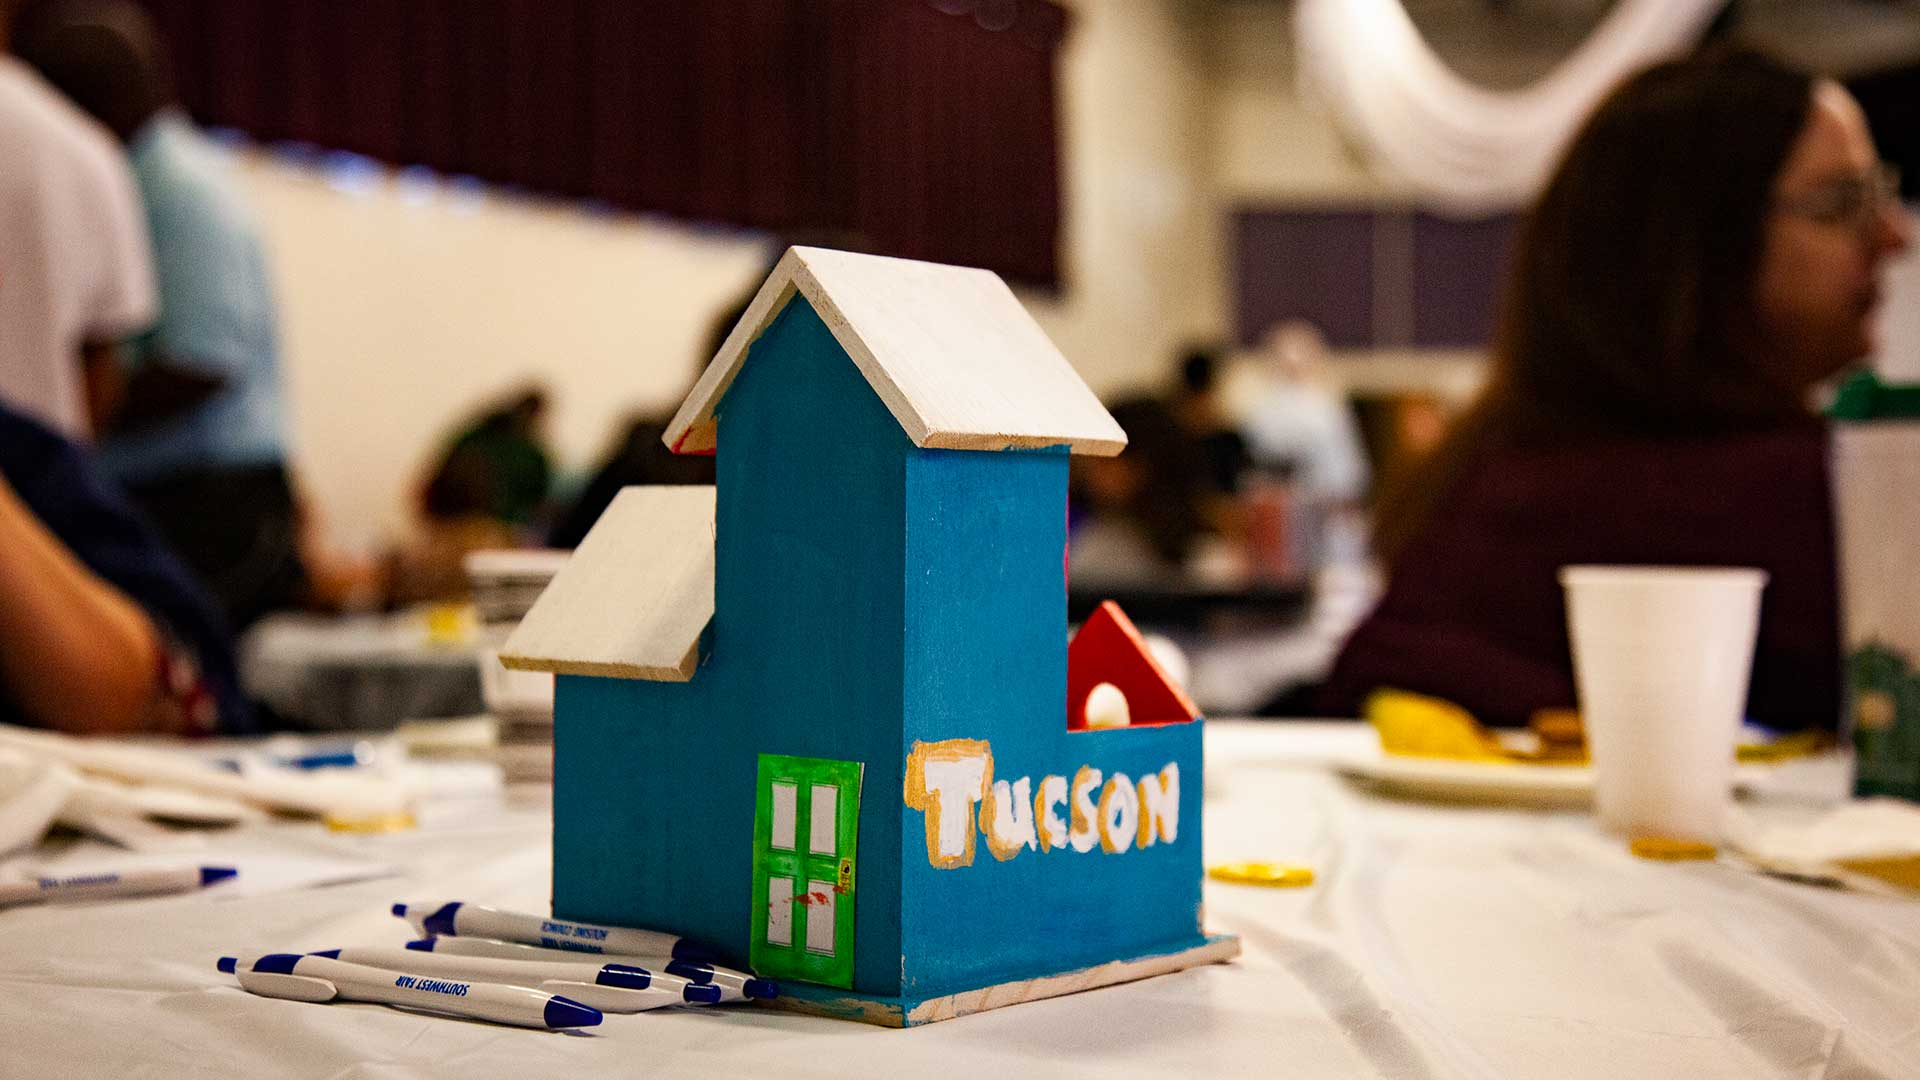 Tables at an event organized by the Southwest Fair Housing Council, October 2018.